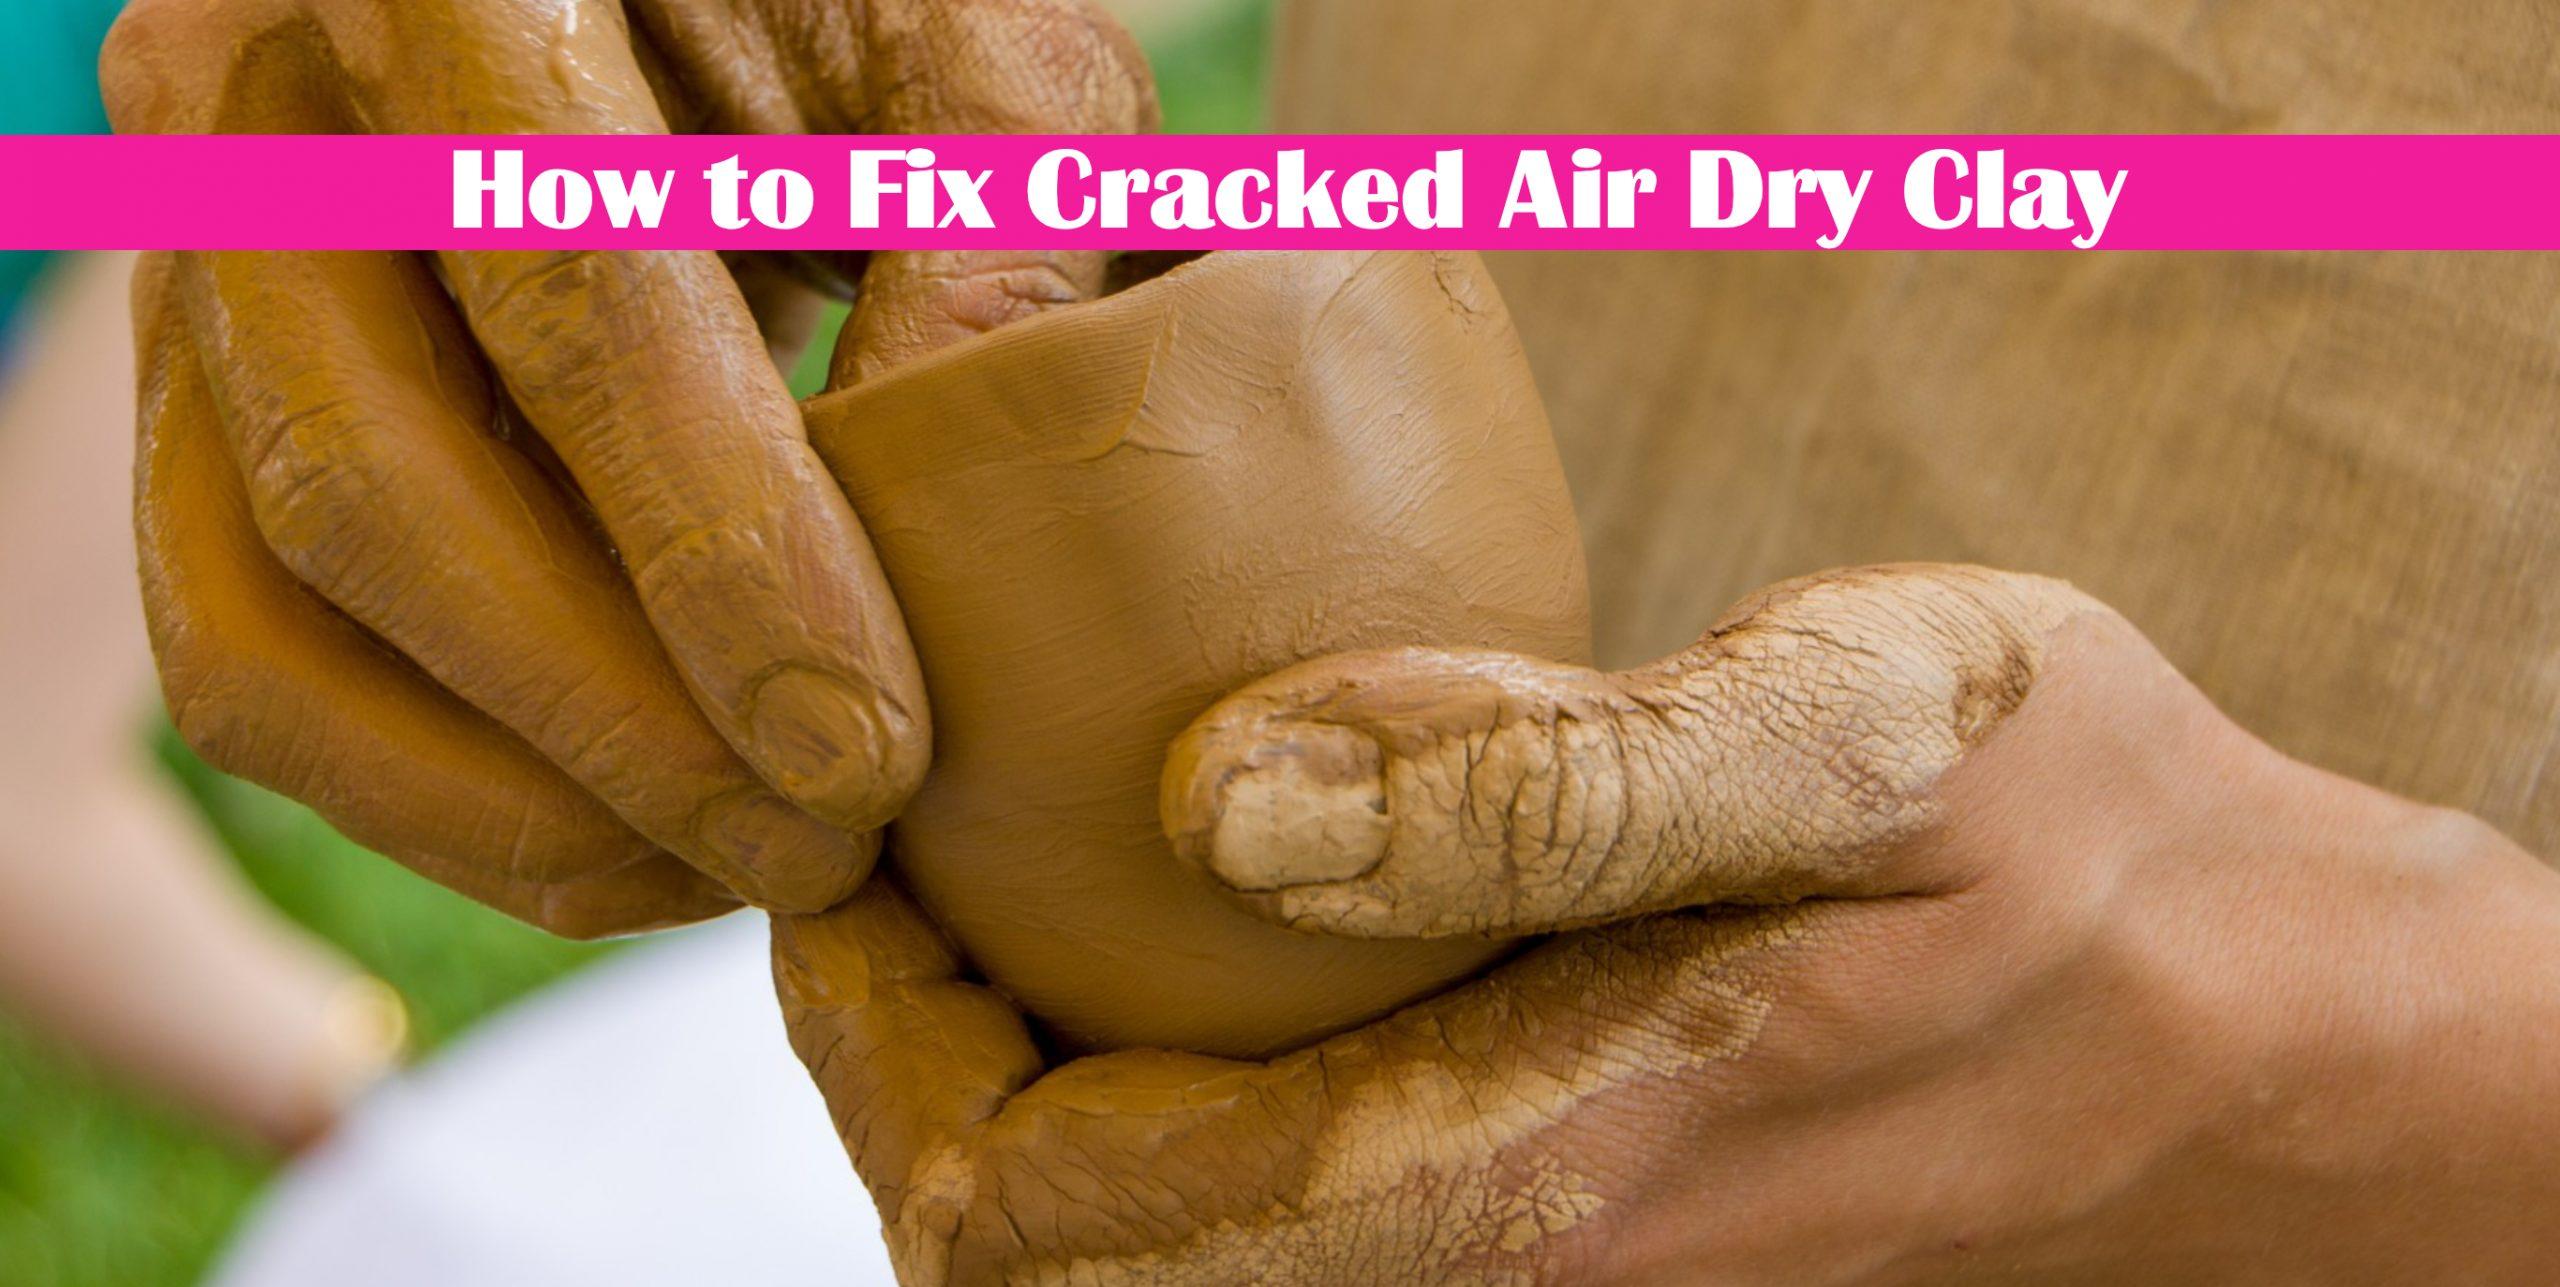 How to Fix Cracked Air Dry Clay